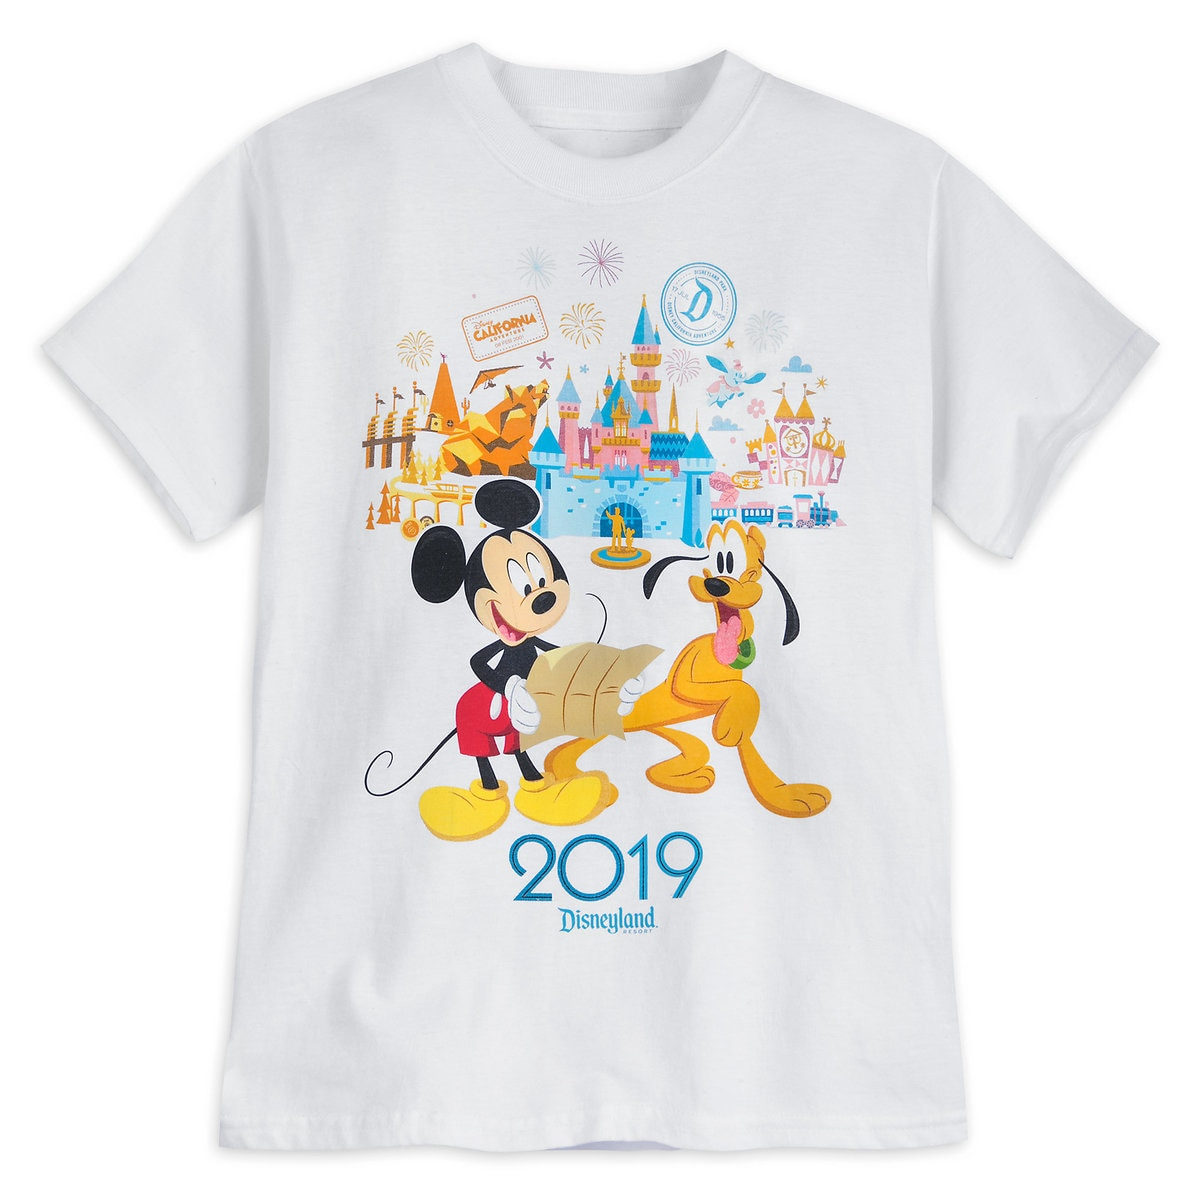 eff5cf327 Product Image of Mickey Mouse and Friends T-Shirt for Kids - Disneyland  2019 #